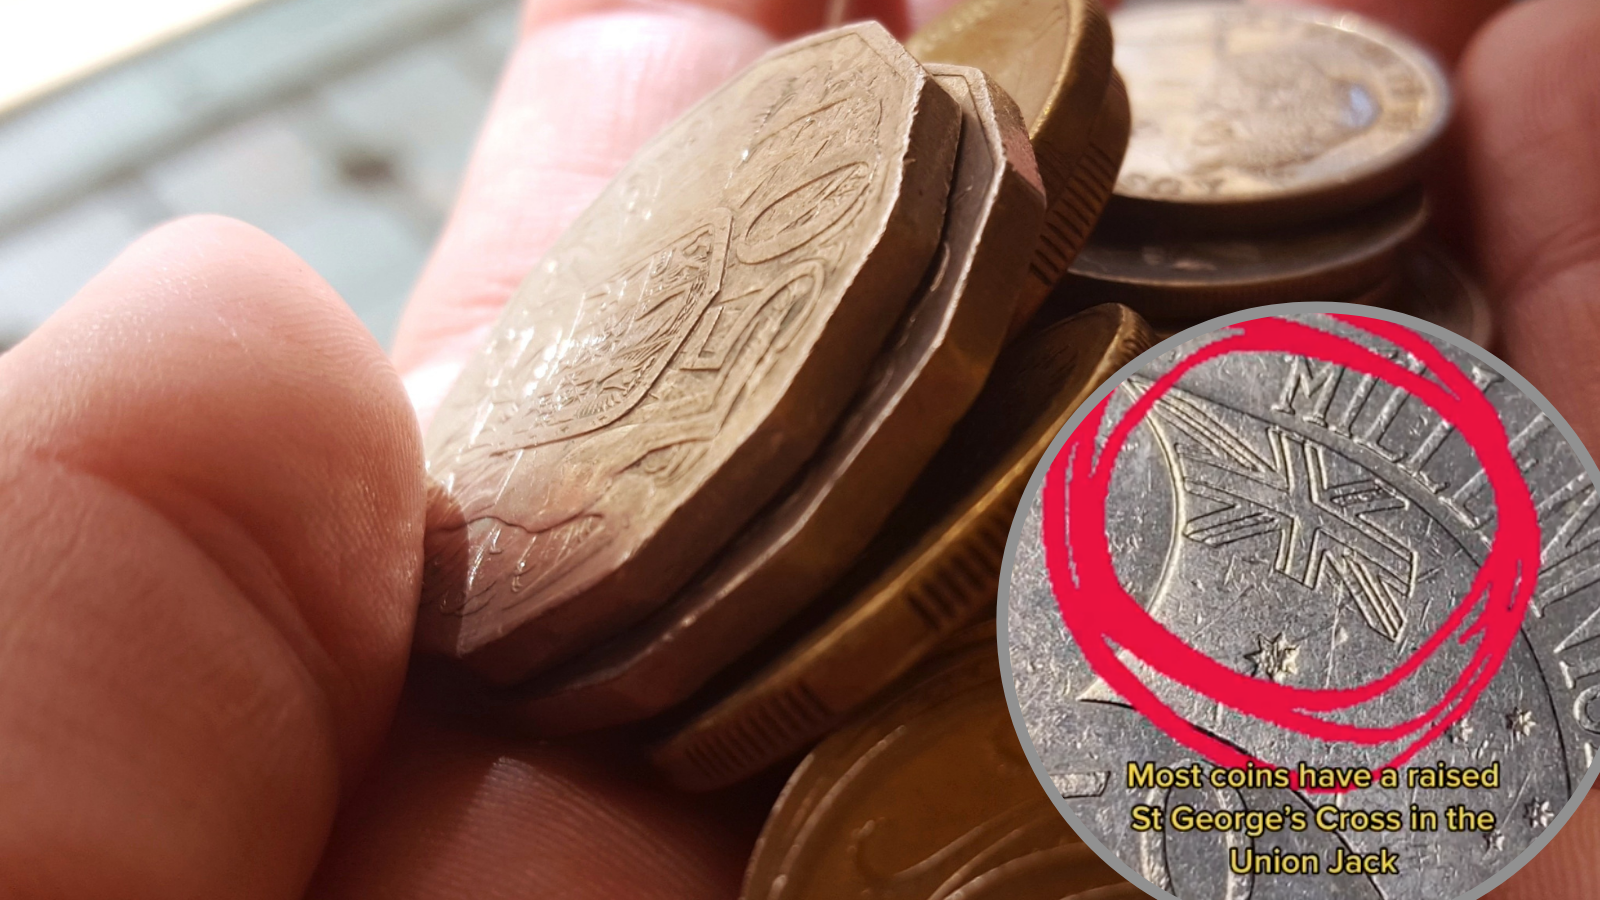 Detail on rare 50 cent coin makes it worth $800